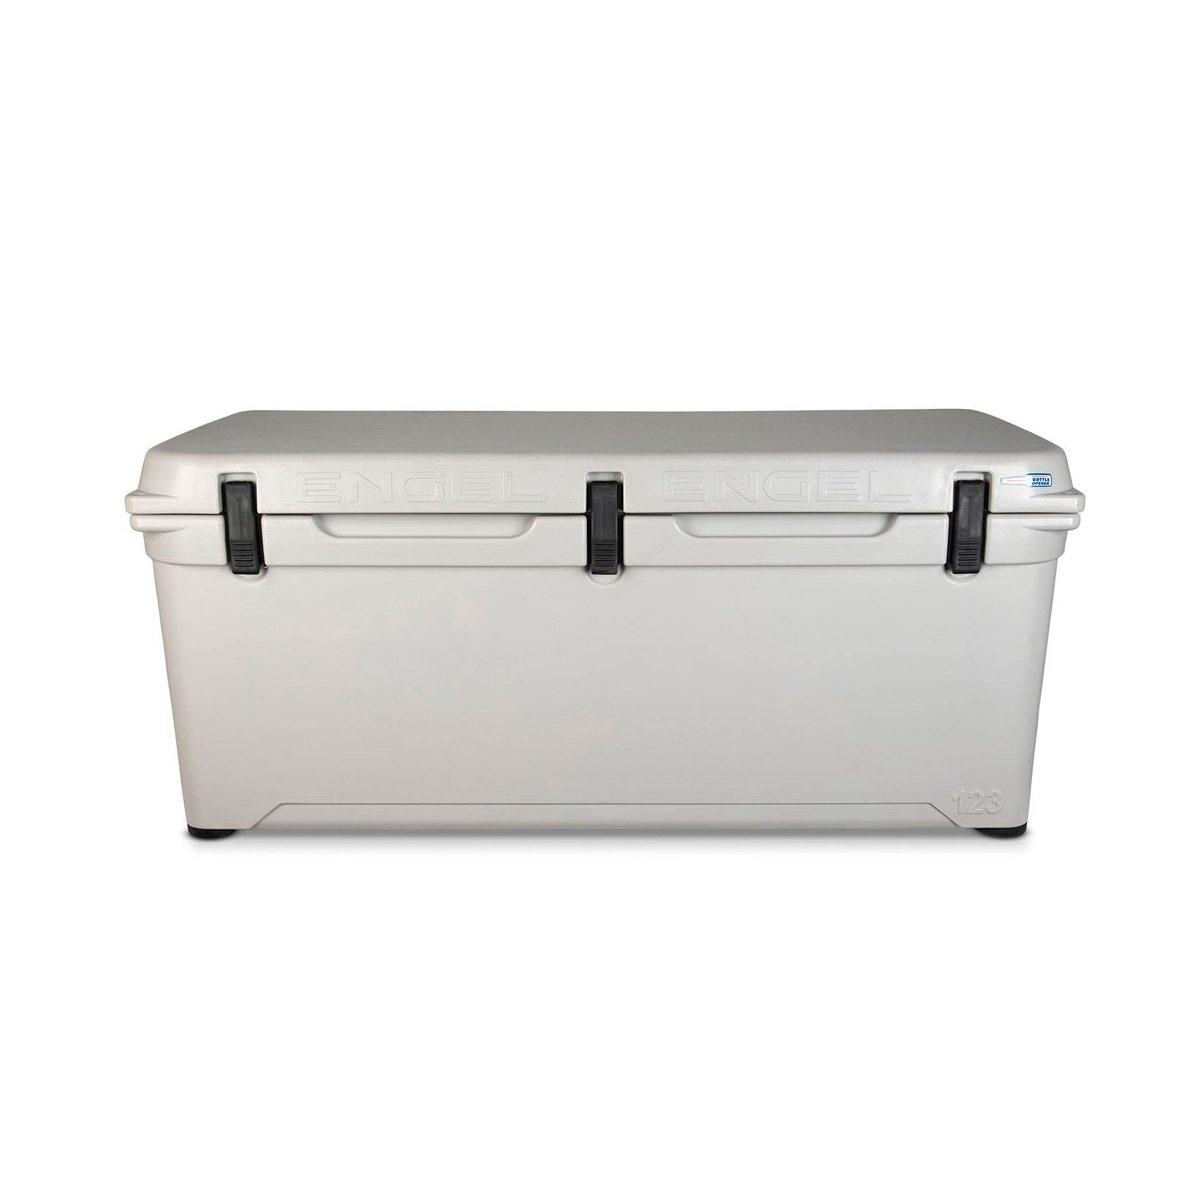 Engel 123 Hard Cooler